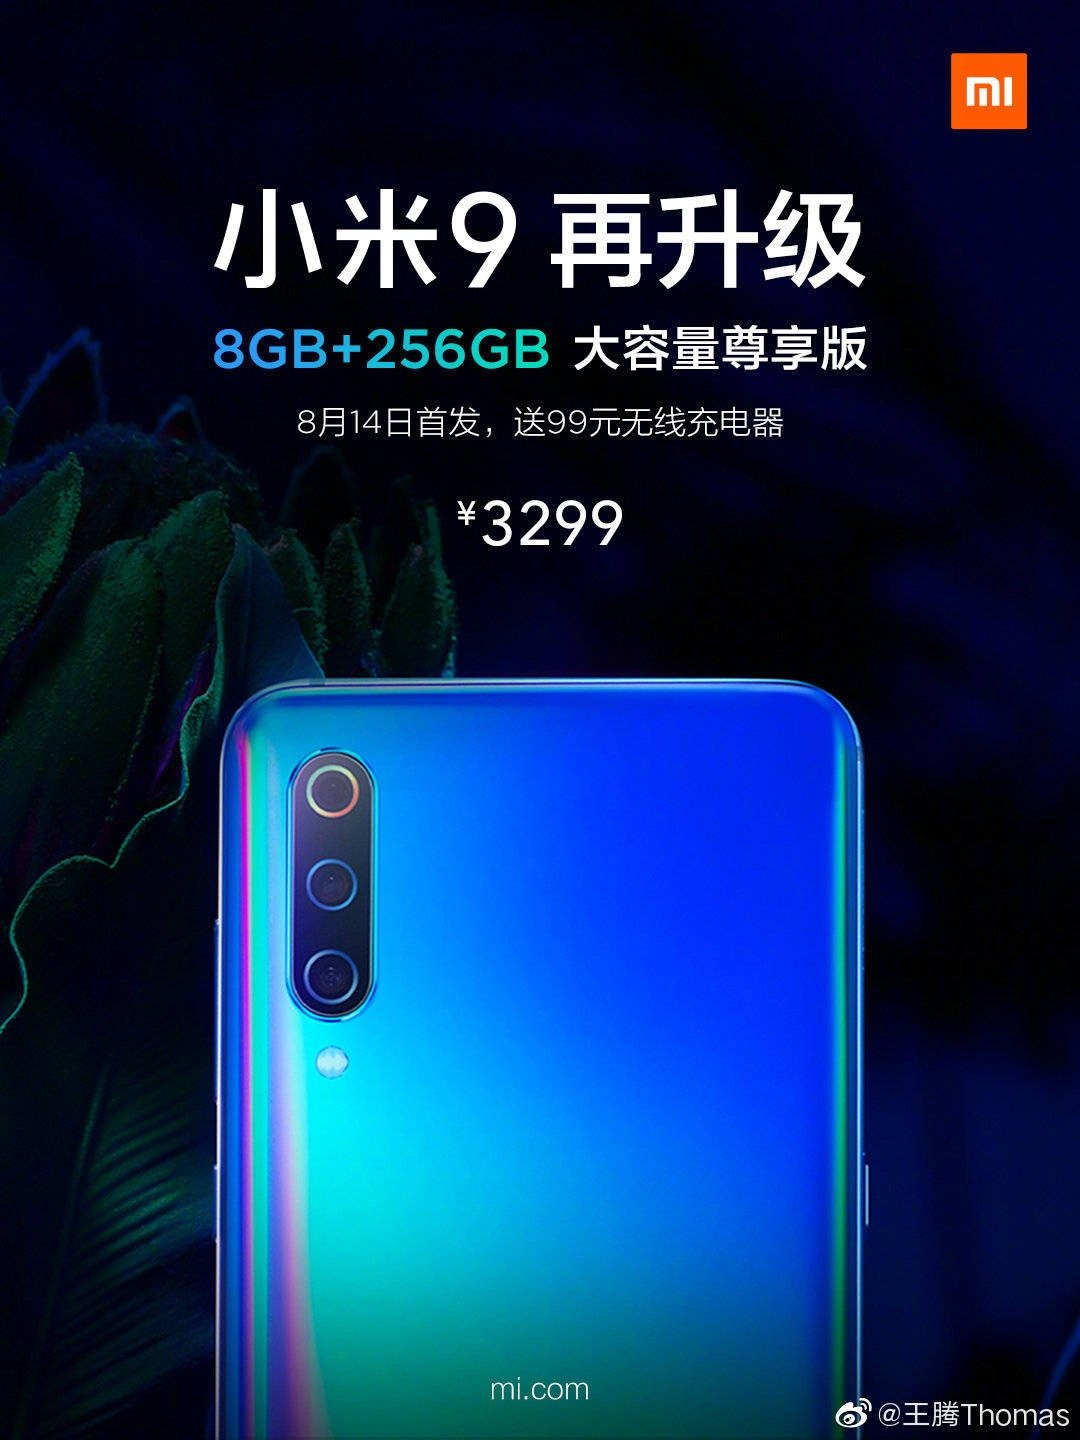 256GB of internal storage reach the Xiaomi Mi 9